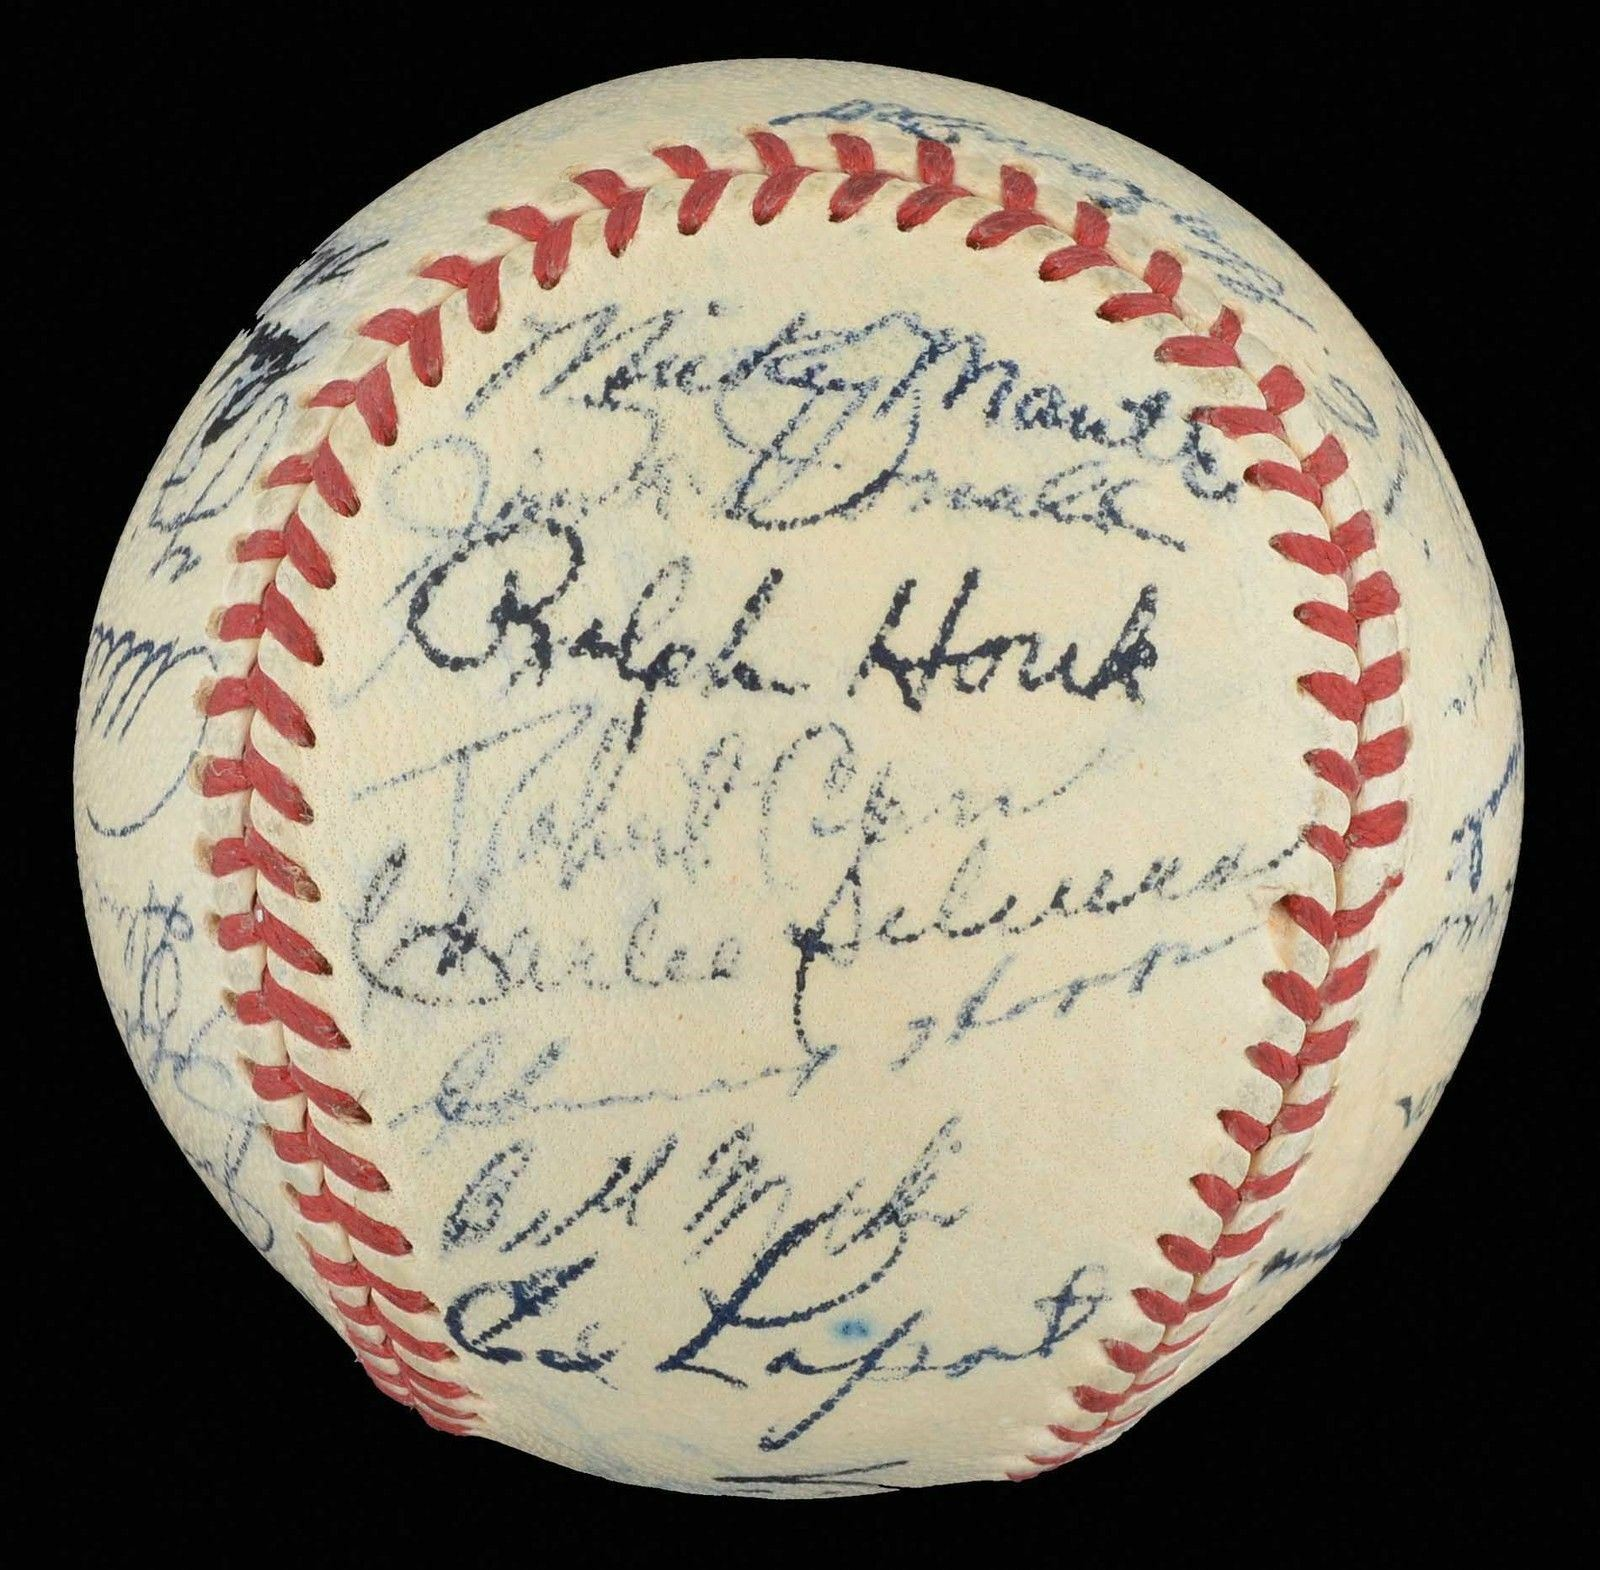 1952 NY Yankees WS Champs Team Signed Baseball Mickey Mantle Joe Dimaggio JSA